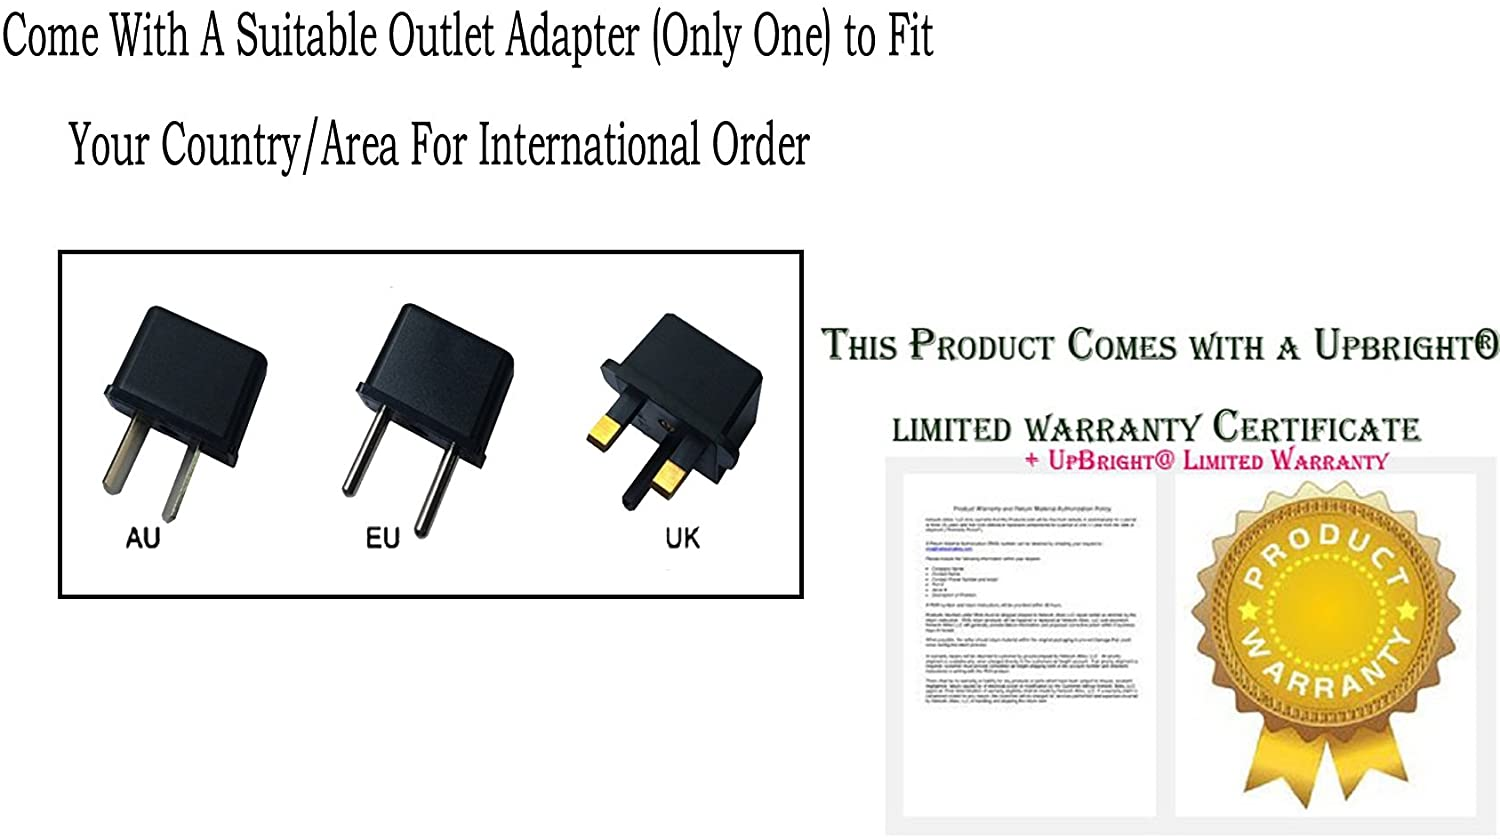 UPBRIGHT 12V AC/DC Adapter Replacement for Sunrise DeVilbiss Traveler 6910 P 6910P-DR 6910PDR Portable Compressor System RGD48120120 12VDC 1200mA I.T.E DC12V 1.2A 1.5A Power Supply Battery Charger